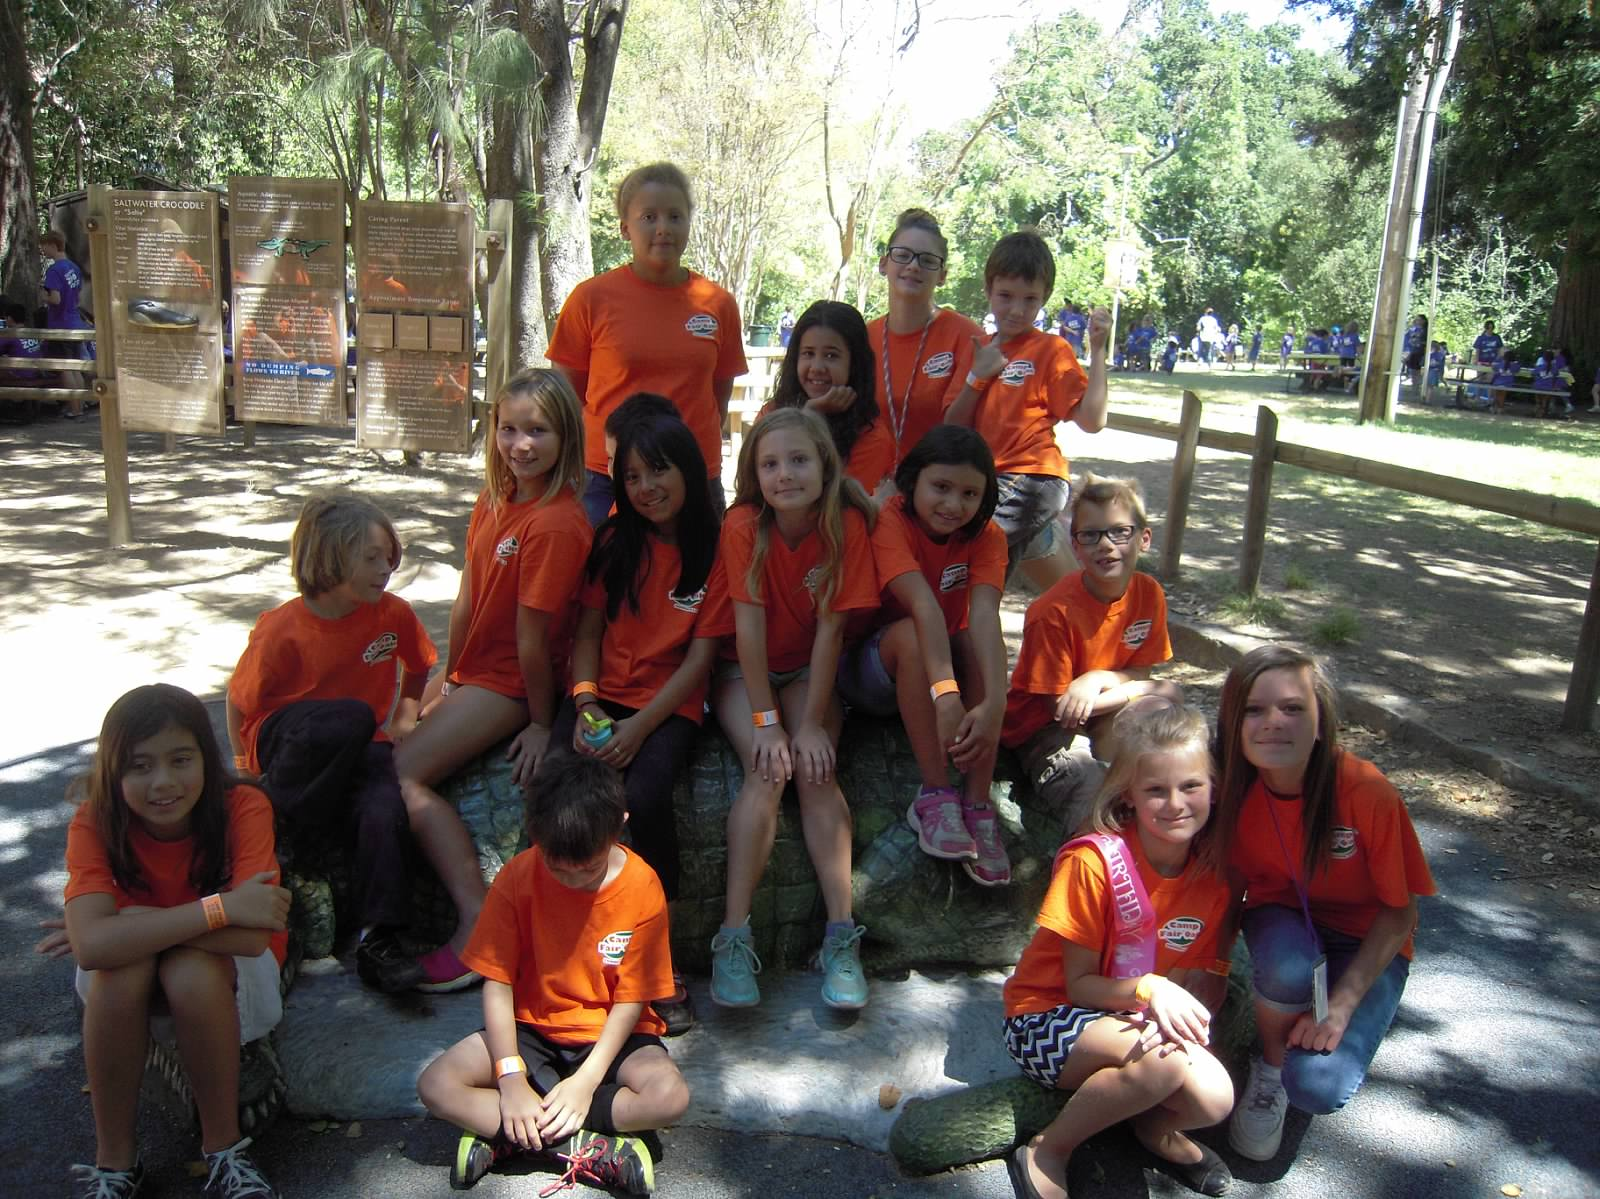 Camper group photo